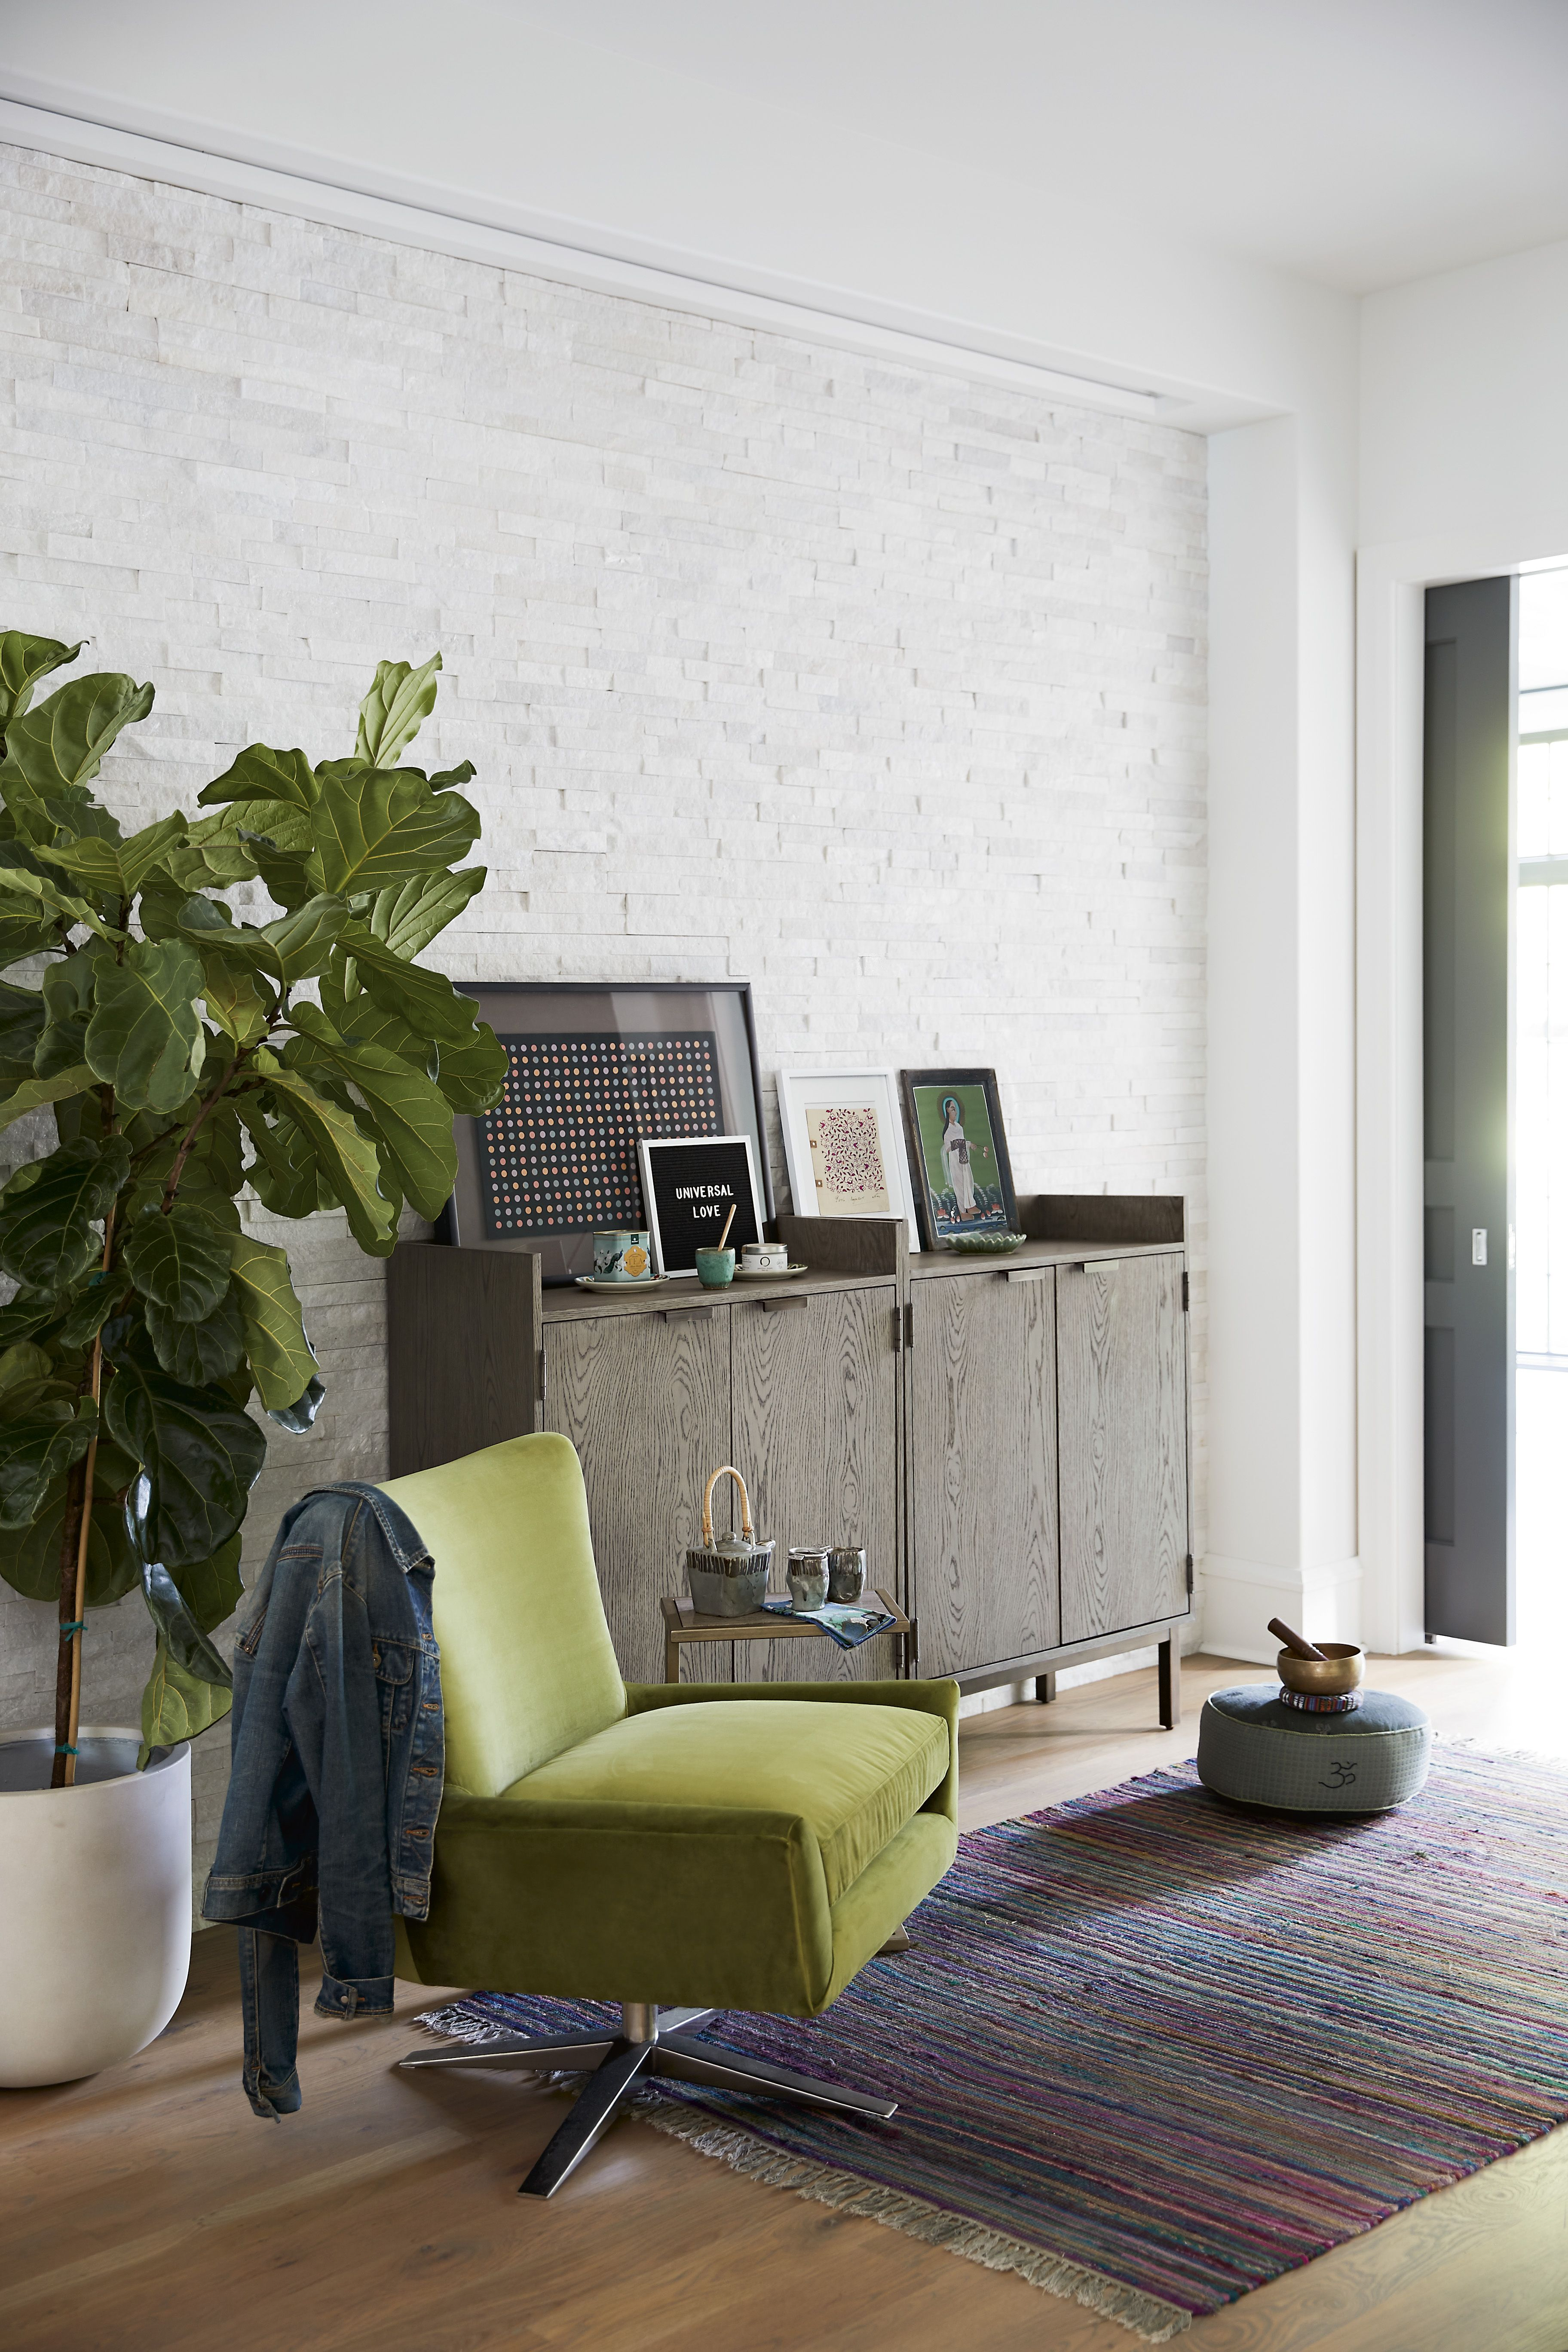 Spaces Smaller Scale Furniture Small Scale Furniture Accent Chairs Furniture #small #scale #furniture #living #room